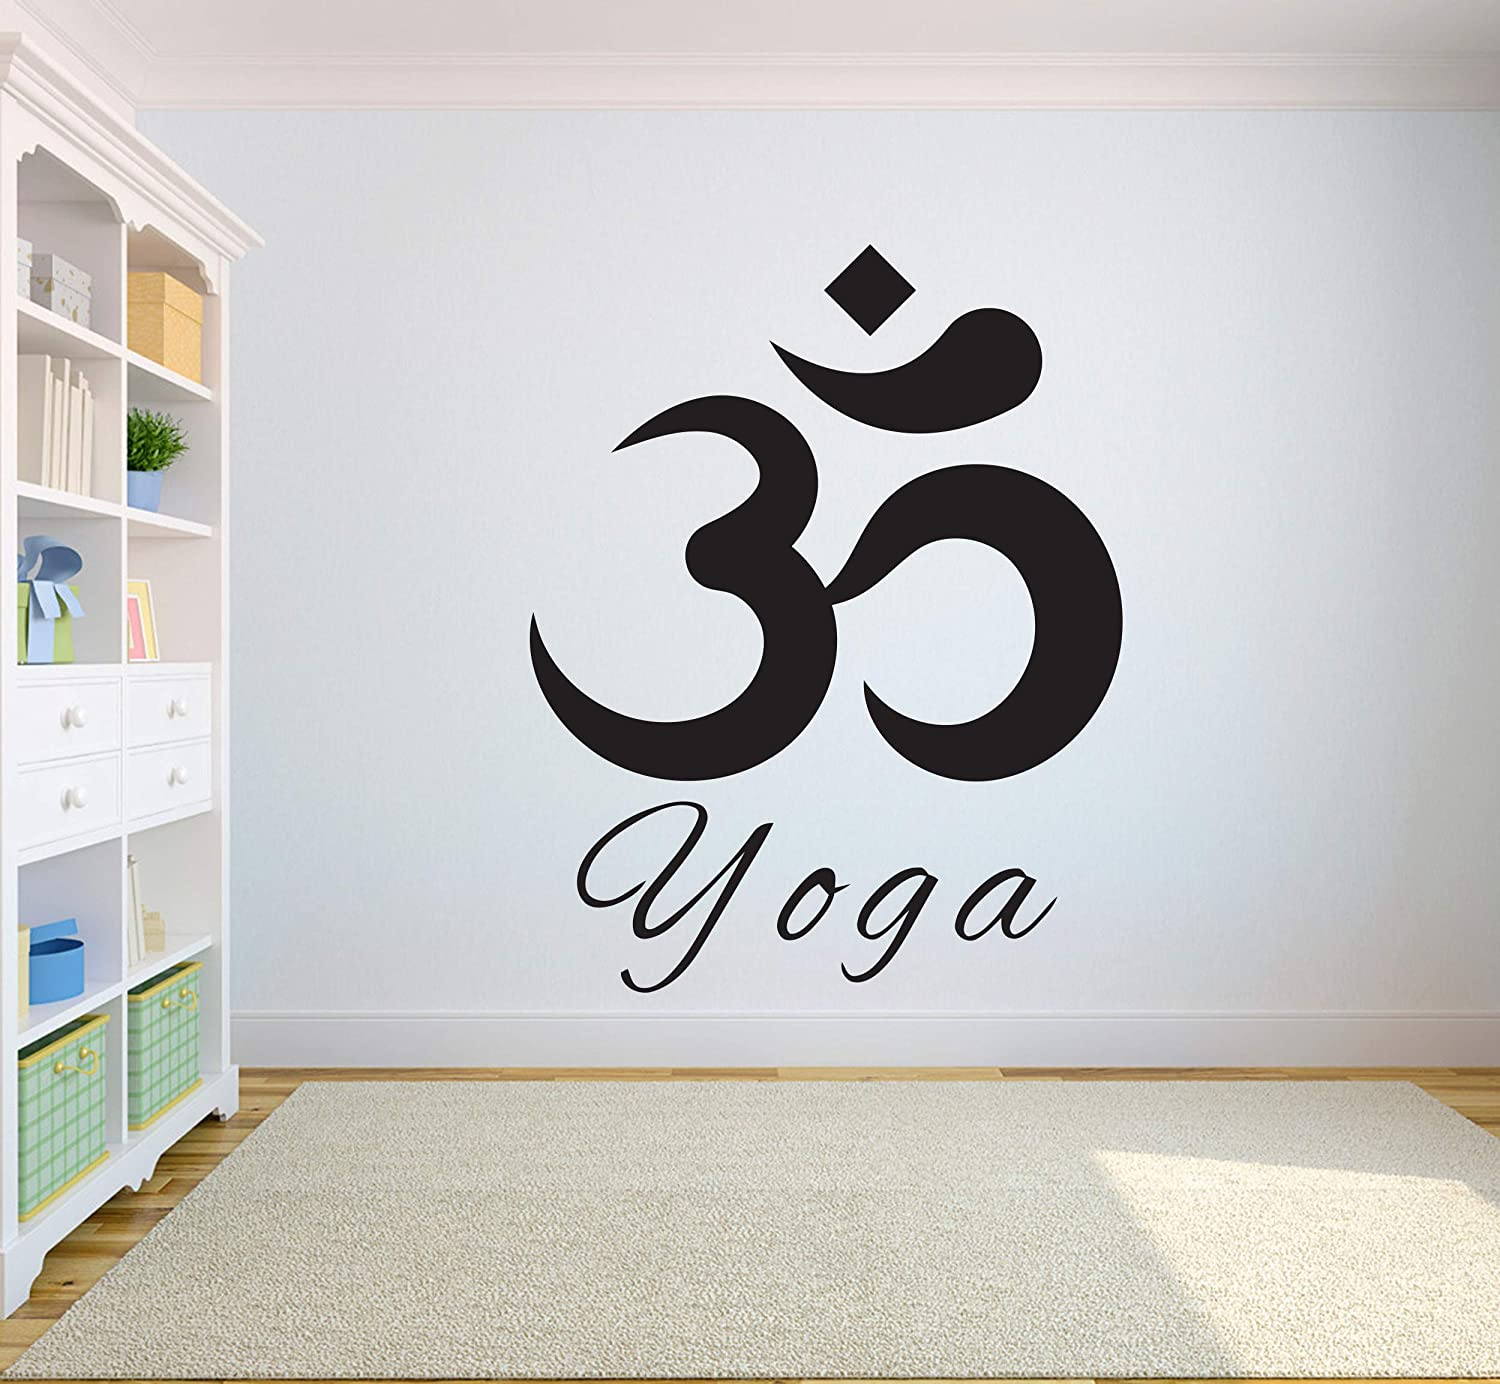 Amazon com yoga wall decal quotes namaste decals lotus flower wall decal yoga decals logo hindu art vinyl sticker 1954re handmade